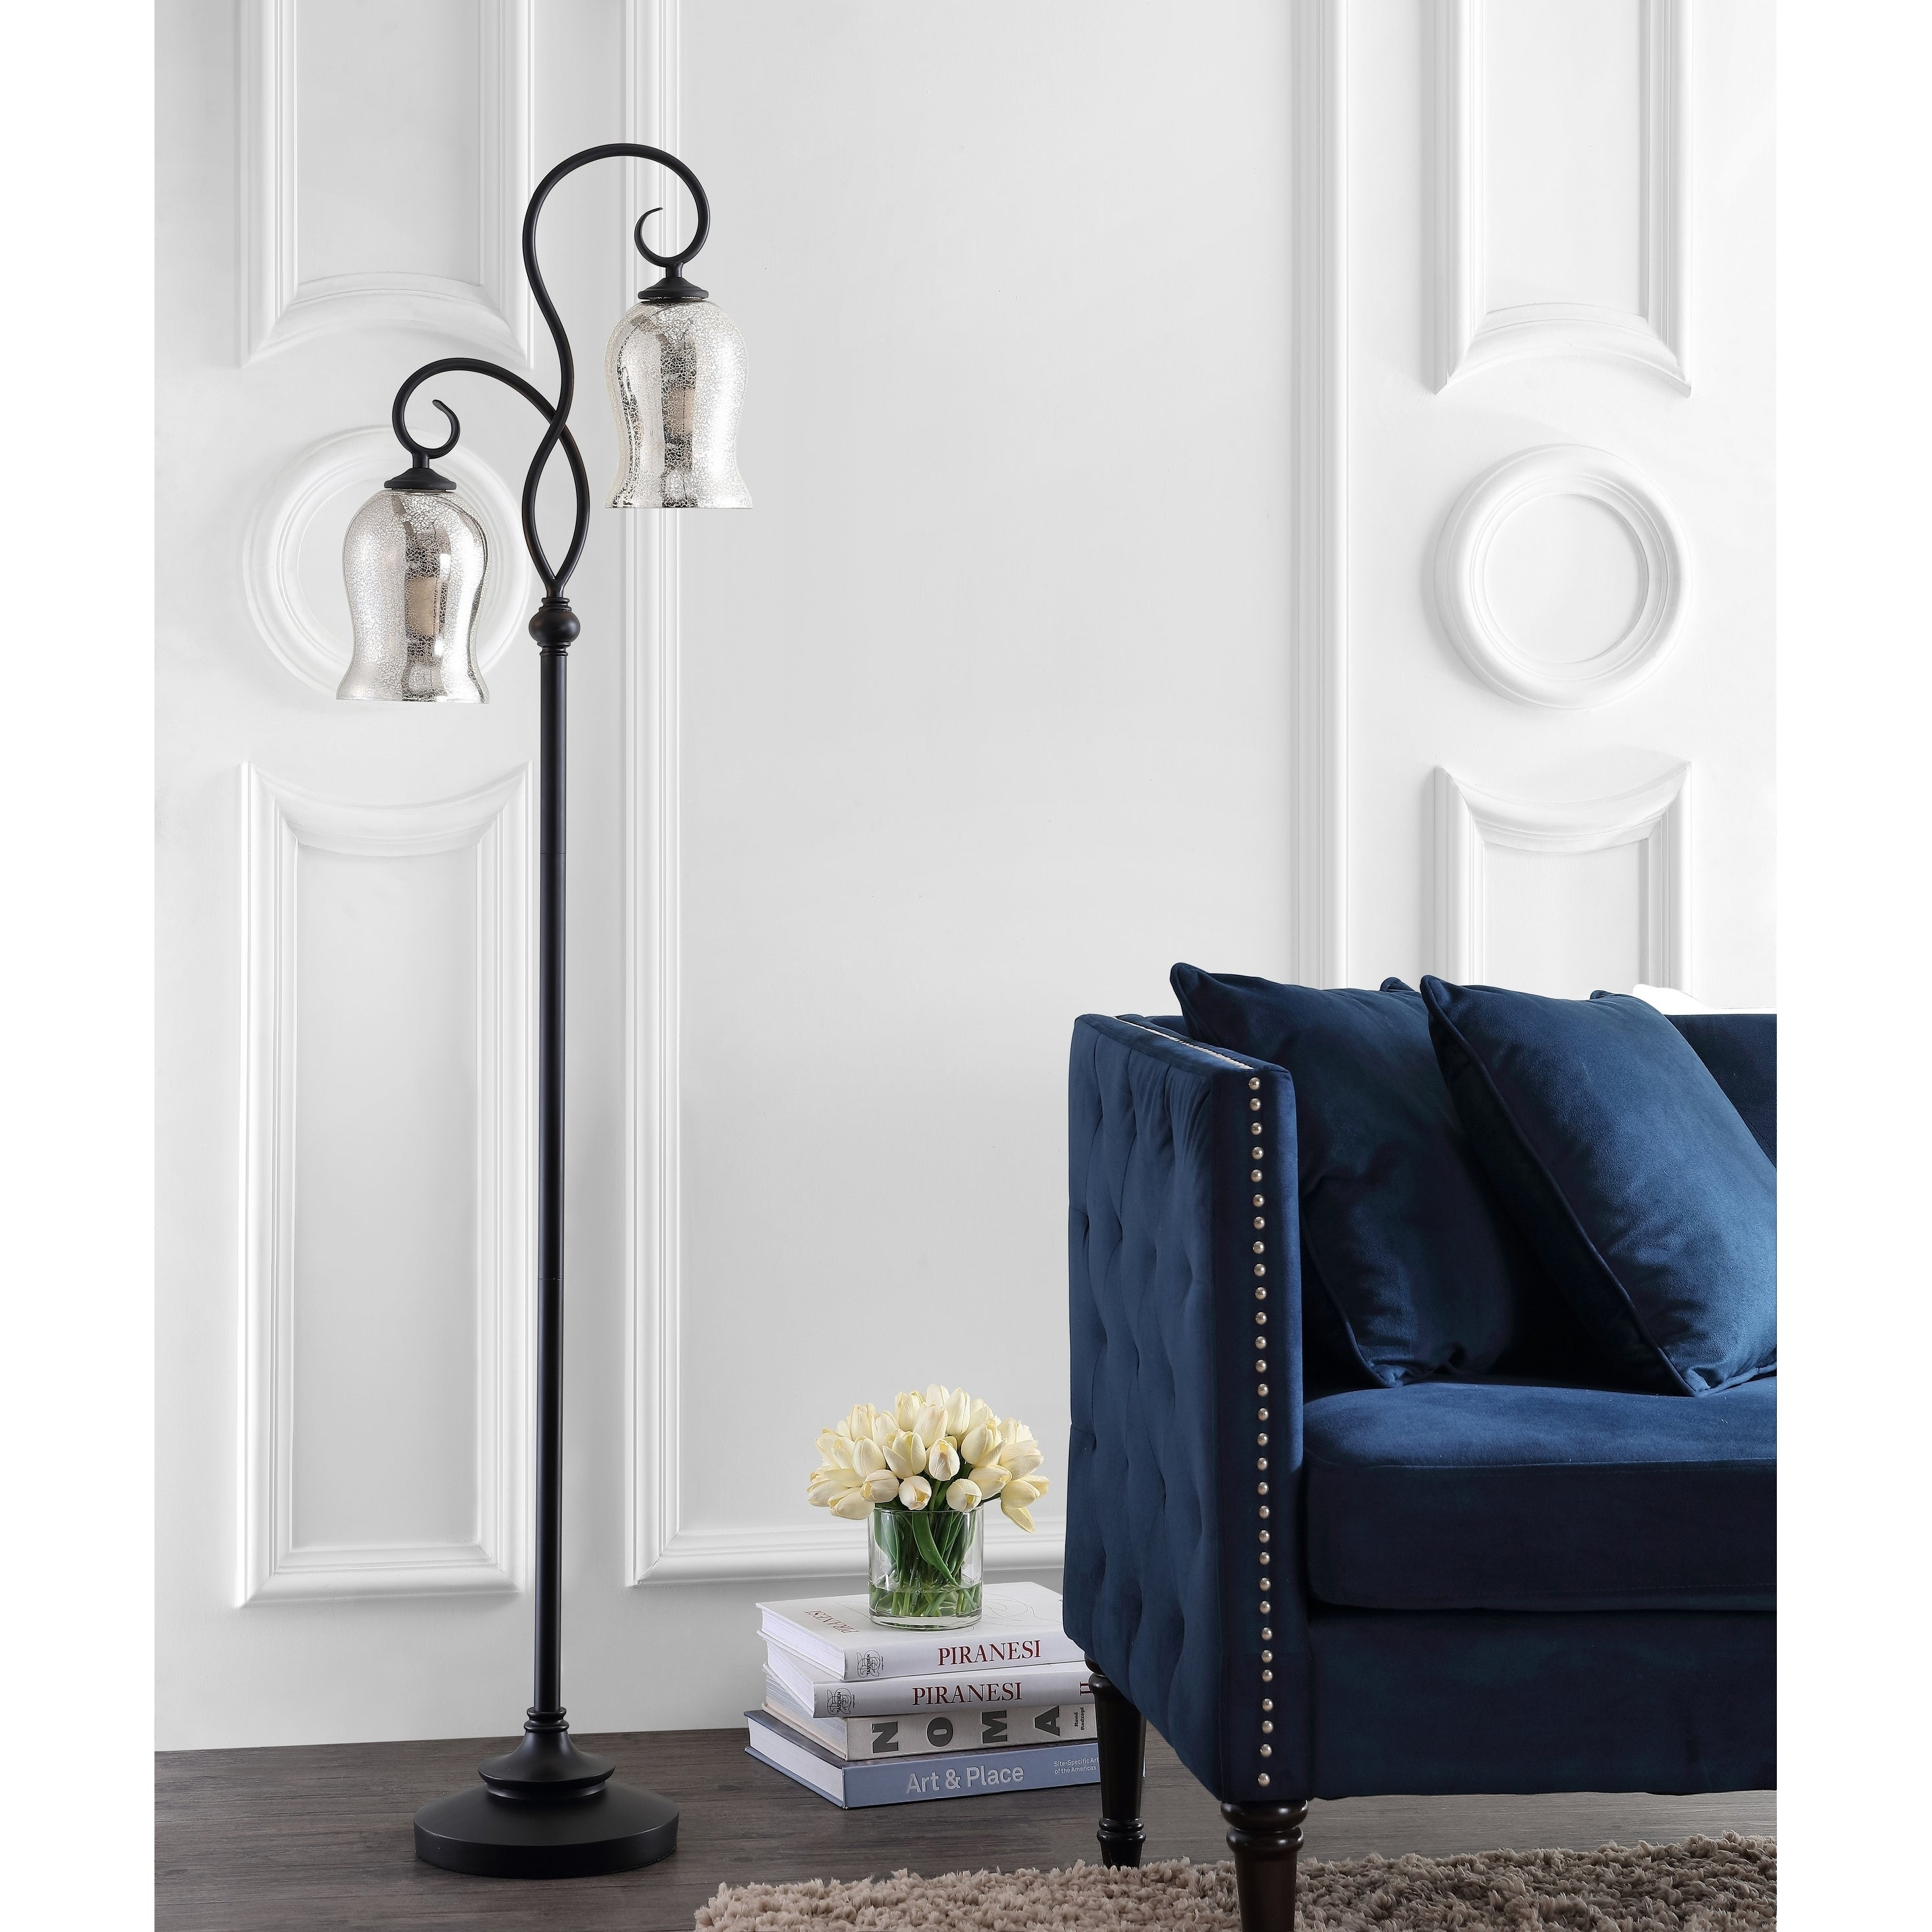 Outstanding Floor Lamps Find Great Lamps Lamp Shades Deals Shopping Home Interior And Landscaping Transignezvosmurscom